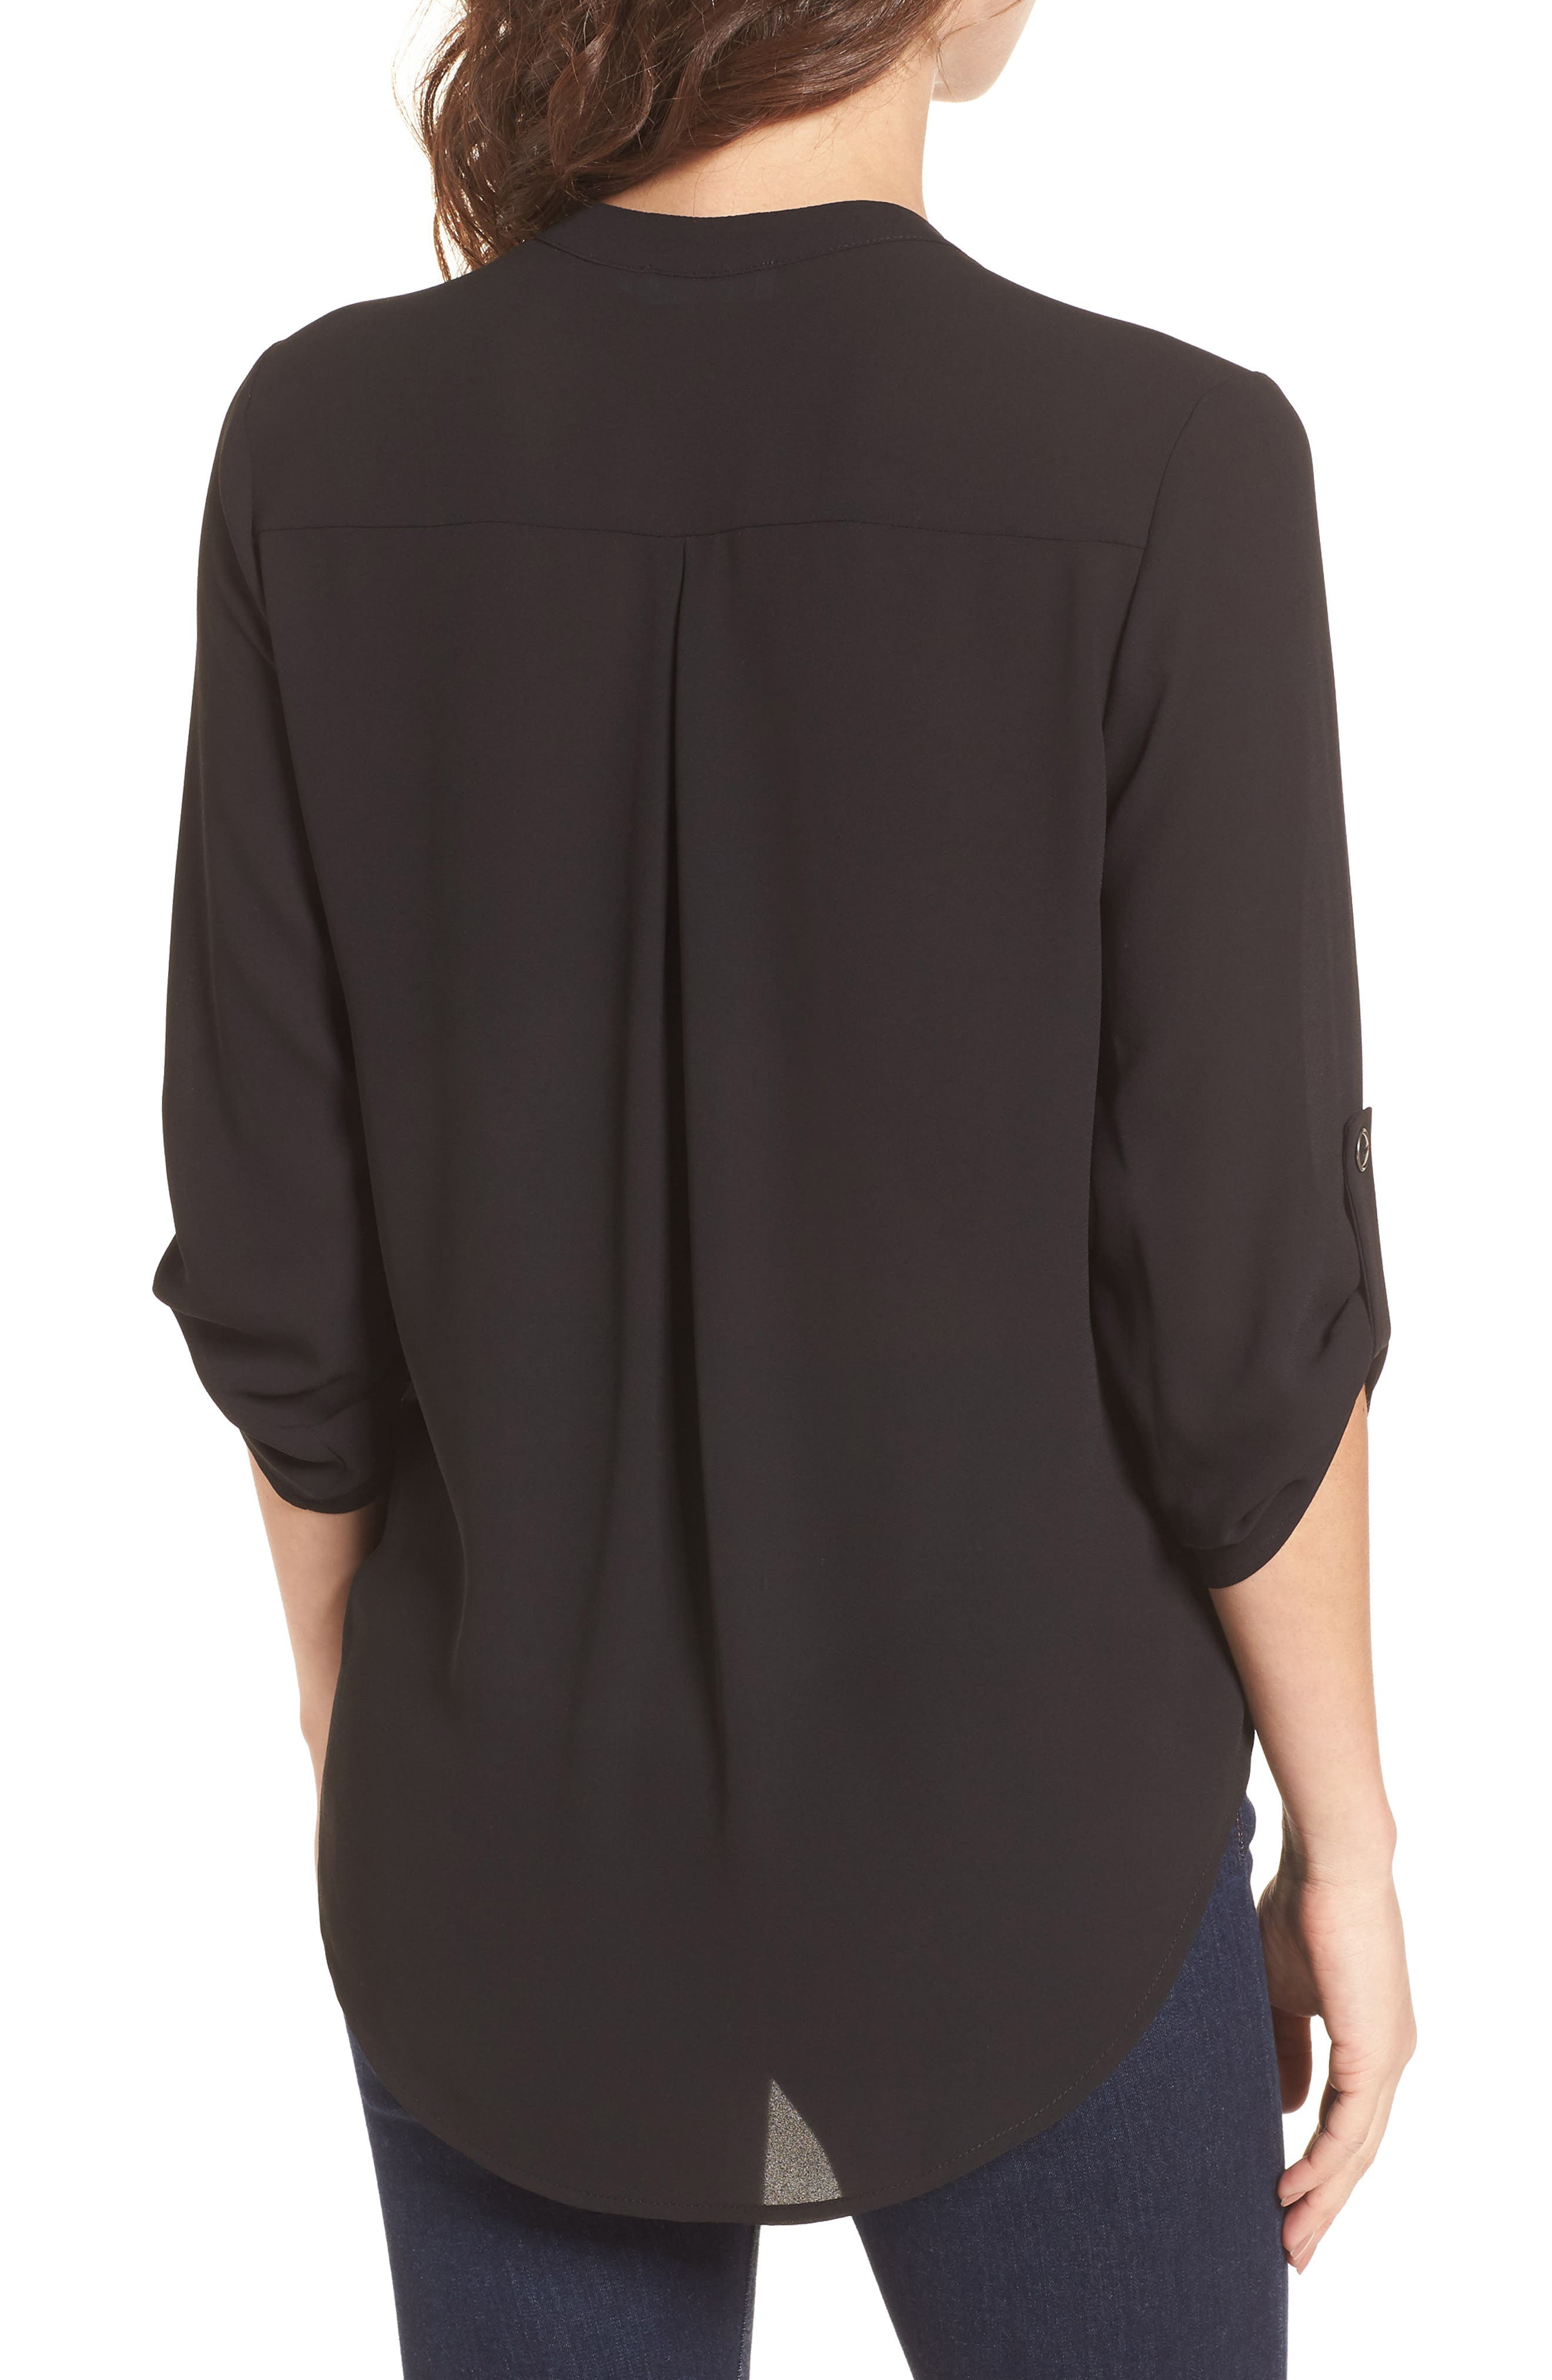 Sea Woman Pleated Crepe Top Black Size 4 Sea New York Buy Cheap How Much Discount Eastbay F7jNXeYCc